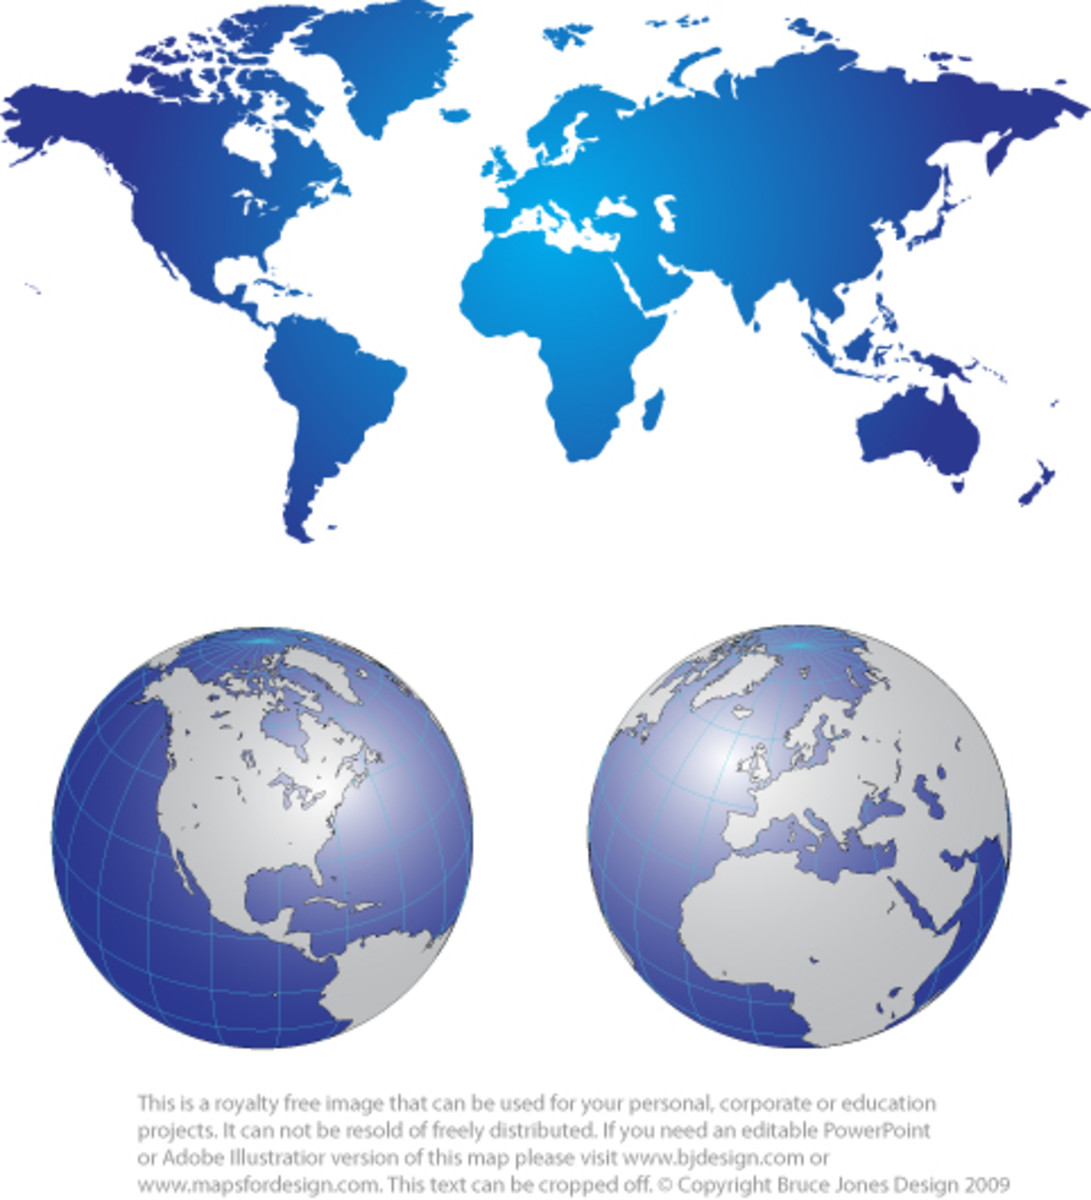 Combo graphic with a gradated World Mercator Projection Map in shades of blue, plus two Global projections below, North America and Europe with Africa, and Middle East. The maps are done in shades of blue and gray.